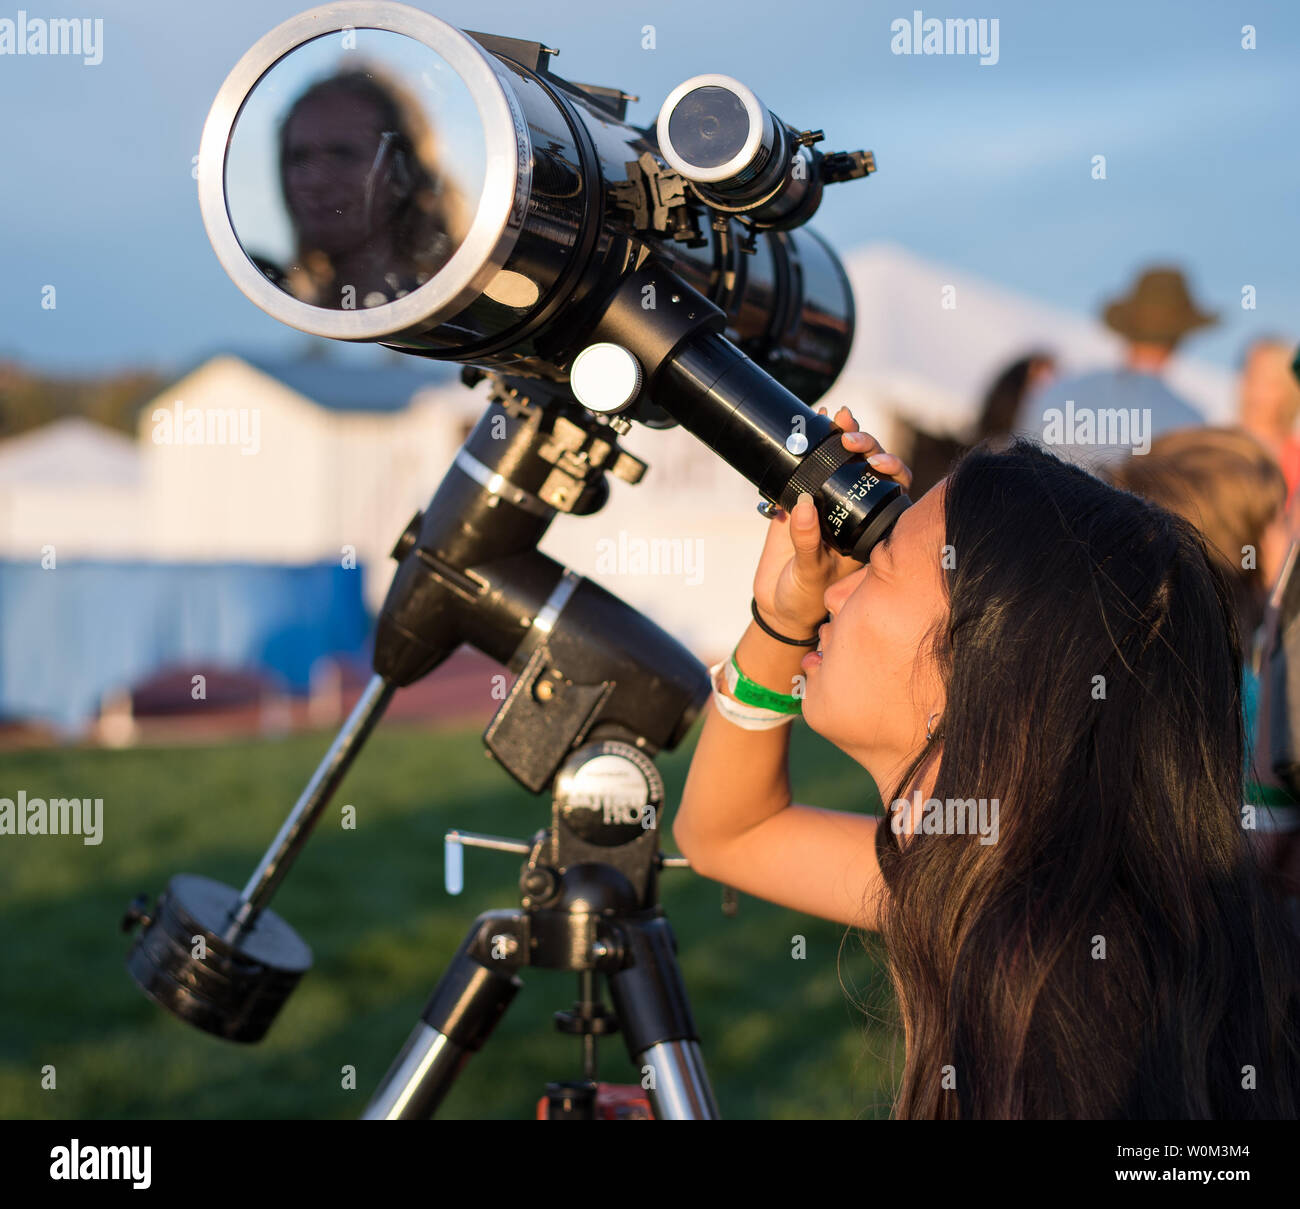 Solar Eclipse Africa Stock Photos Amp Solar Eclipse Africa Stock Images